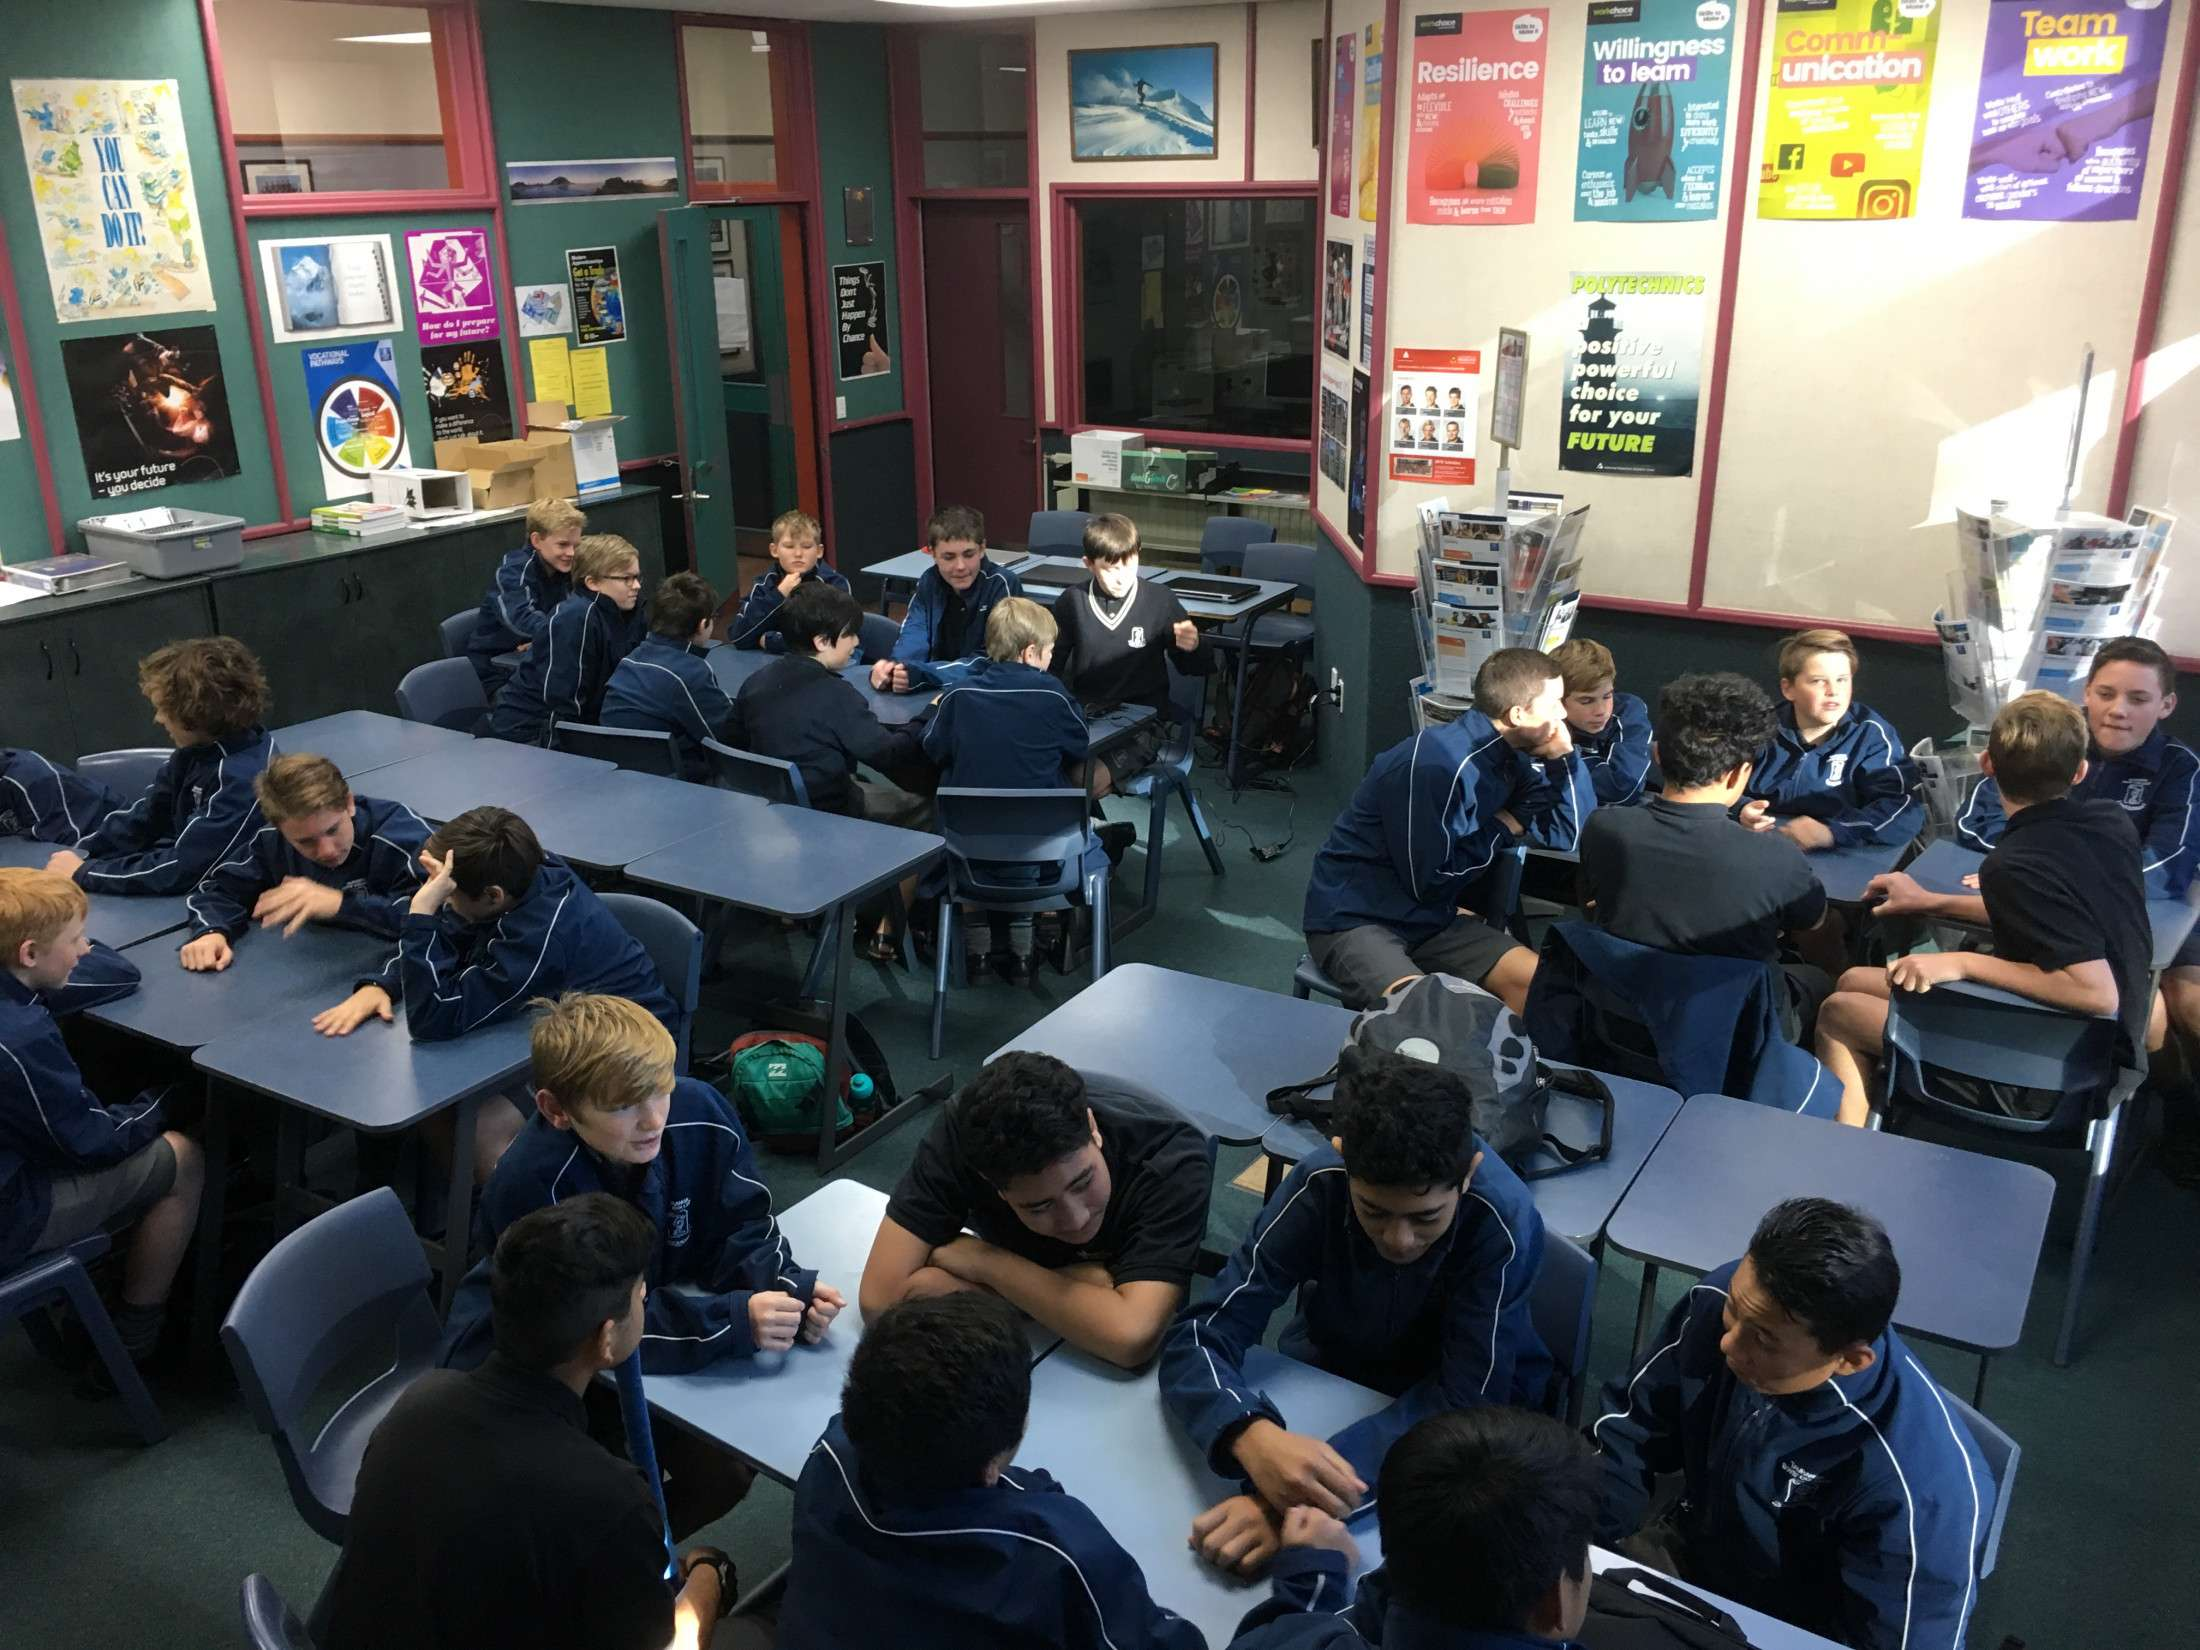 Junior Curriculum - Our Programmes - About Us  -  Tauranga Boys' College